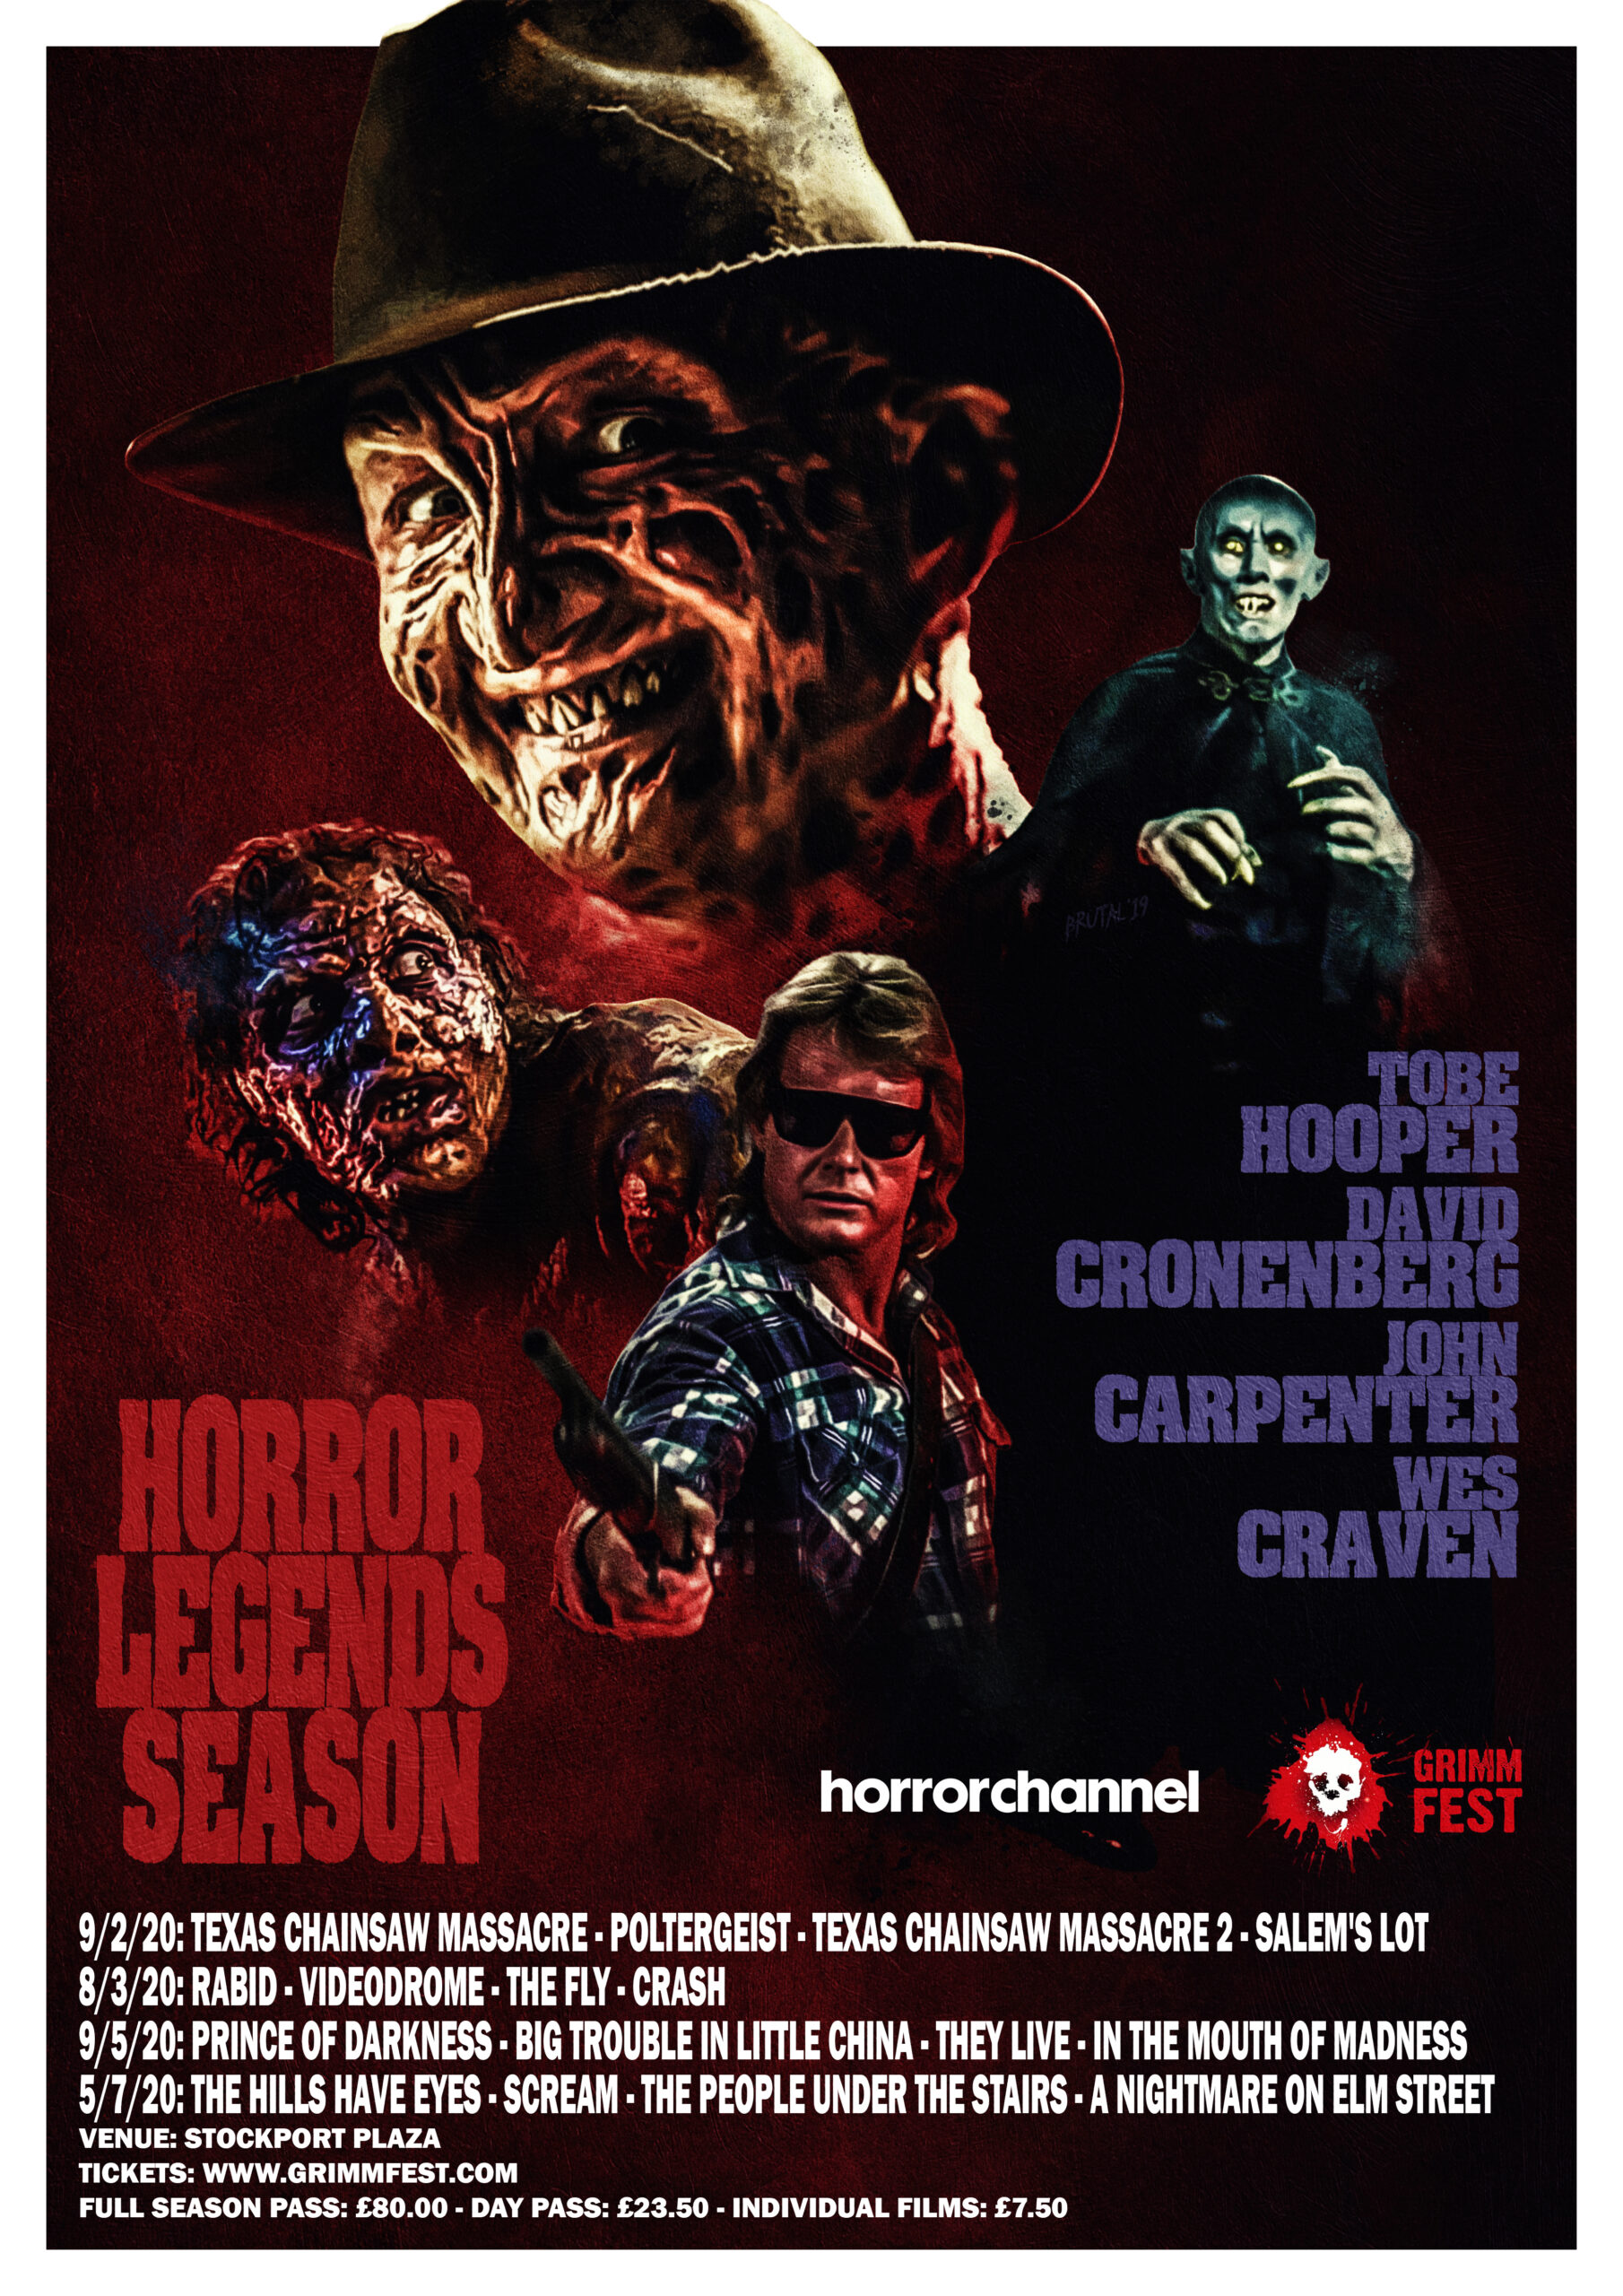 GRIMMFEST SCREEN CLASSIC HORROR MOVIES AS PART OF THEIR HORROR LEGENDS SEASON 2020